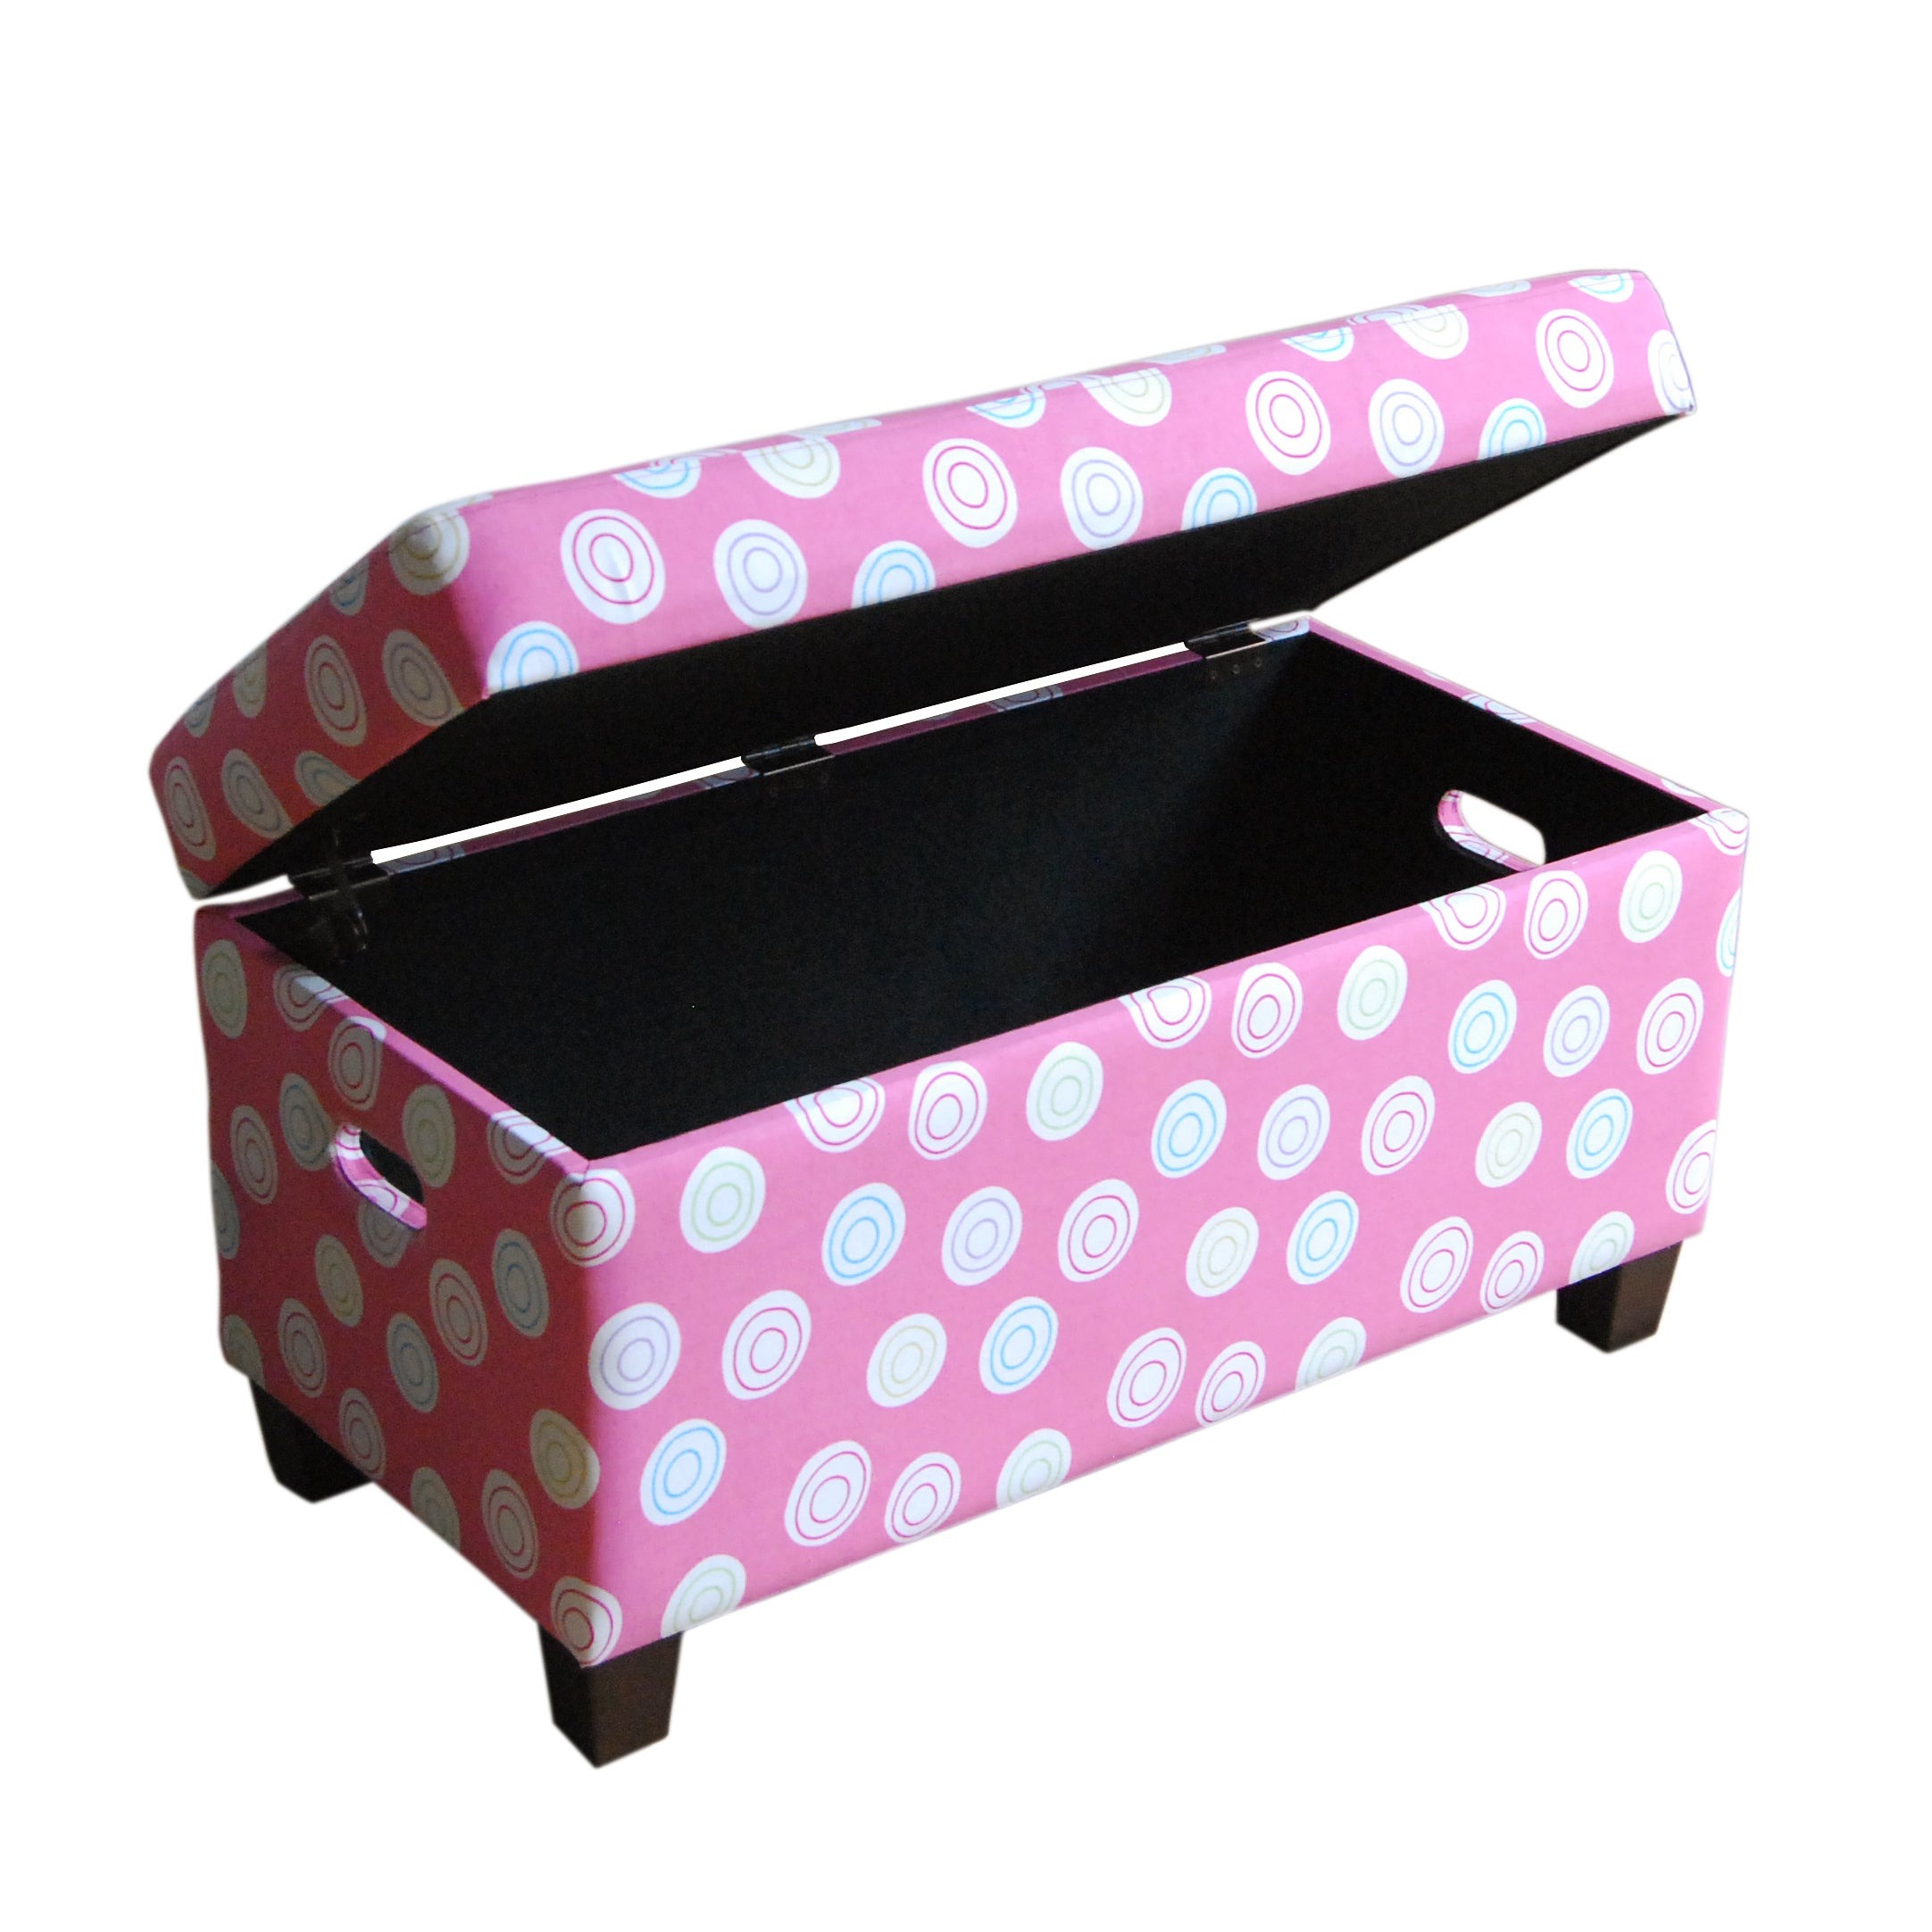 Shop HomePop Deluxe Pink Storage Bench - Free Shipping Today - Overstock.com - 8494133  sc 1 st  Overstock.com & Shop HomePop Deluxe Pink Storage Bench - Free Shipping Today ...